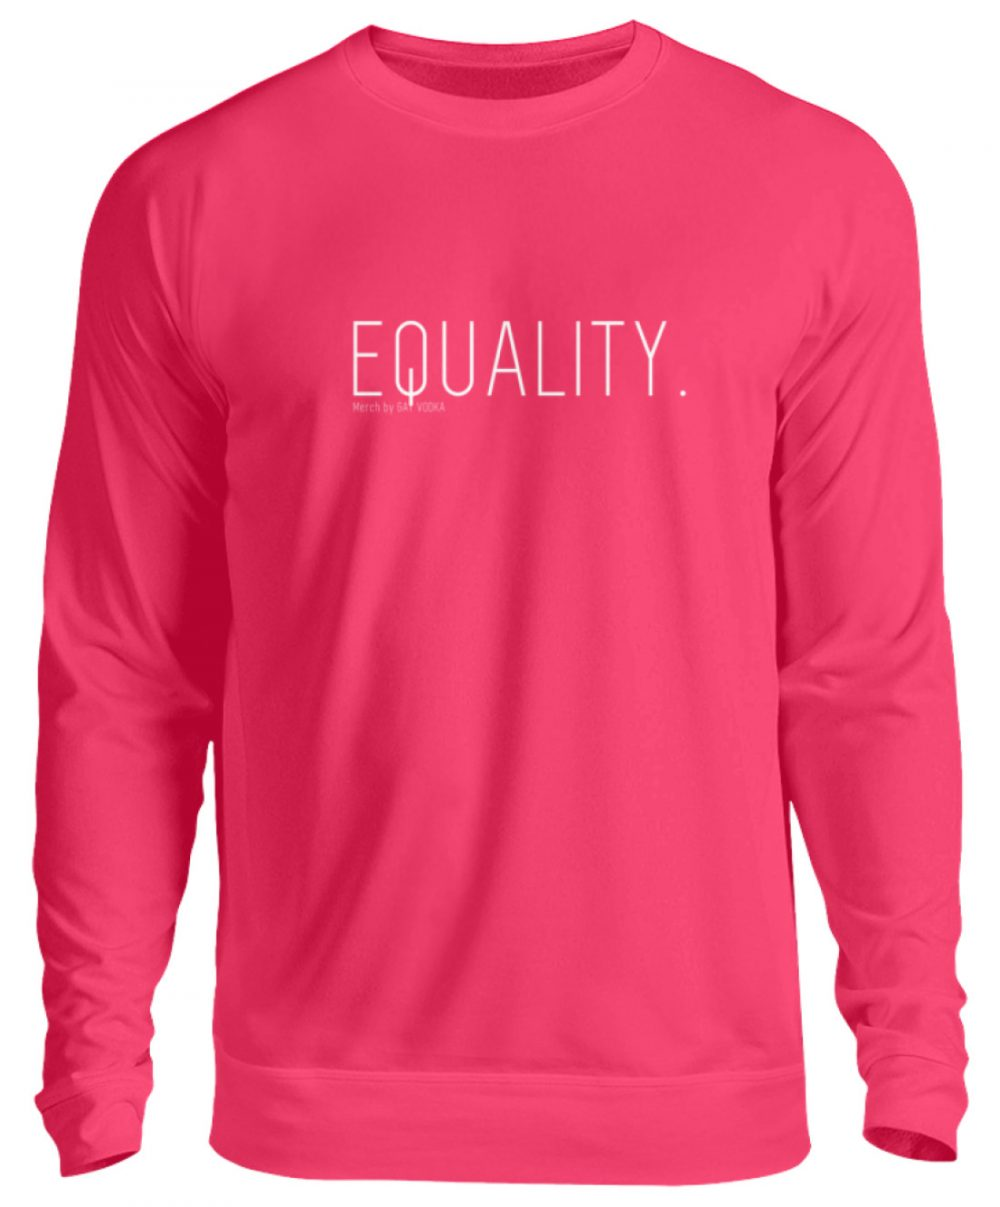 EQUALITY. - Unisex Pullover-1610